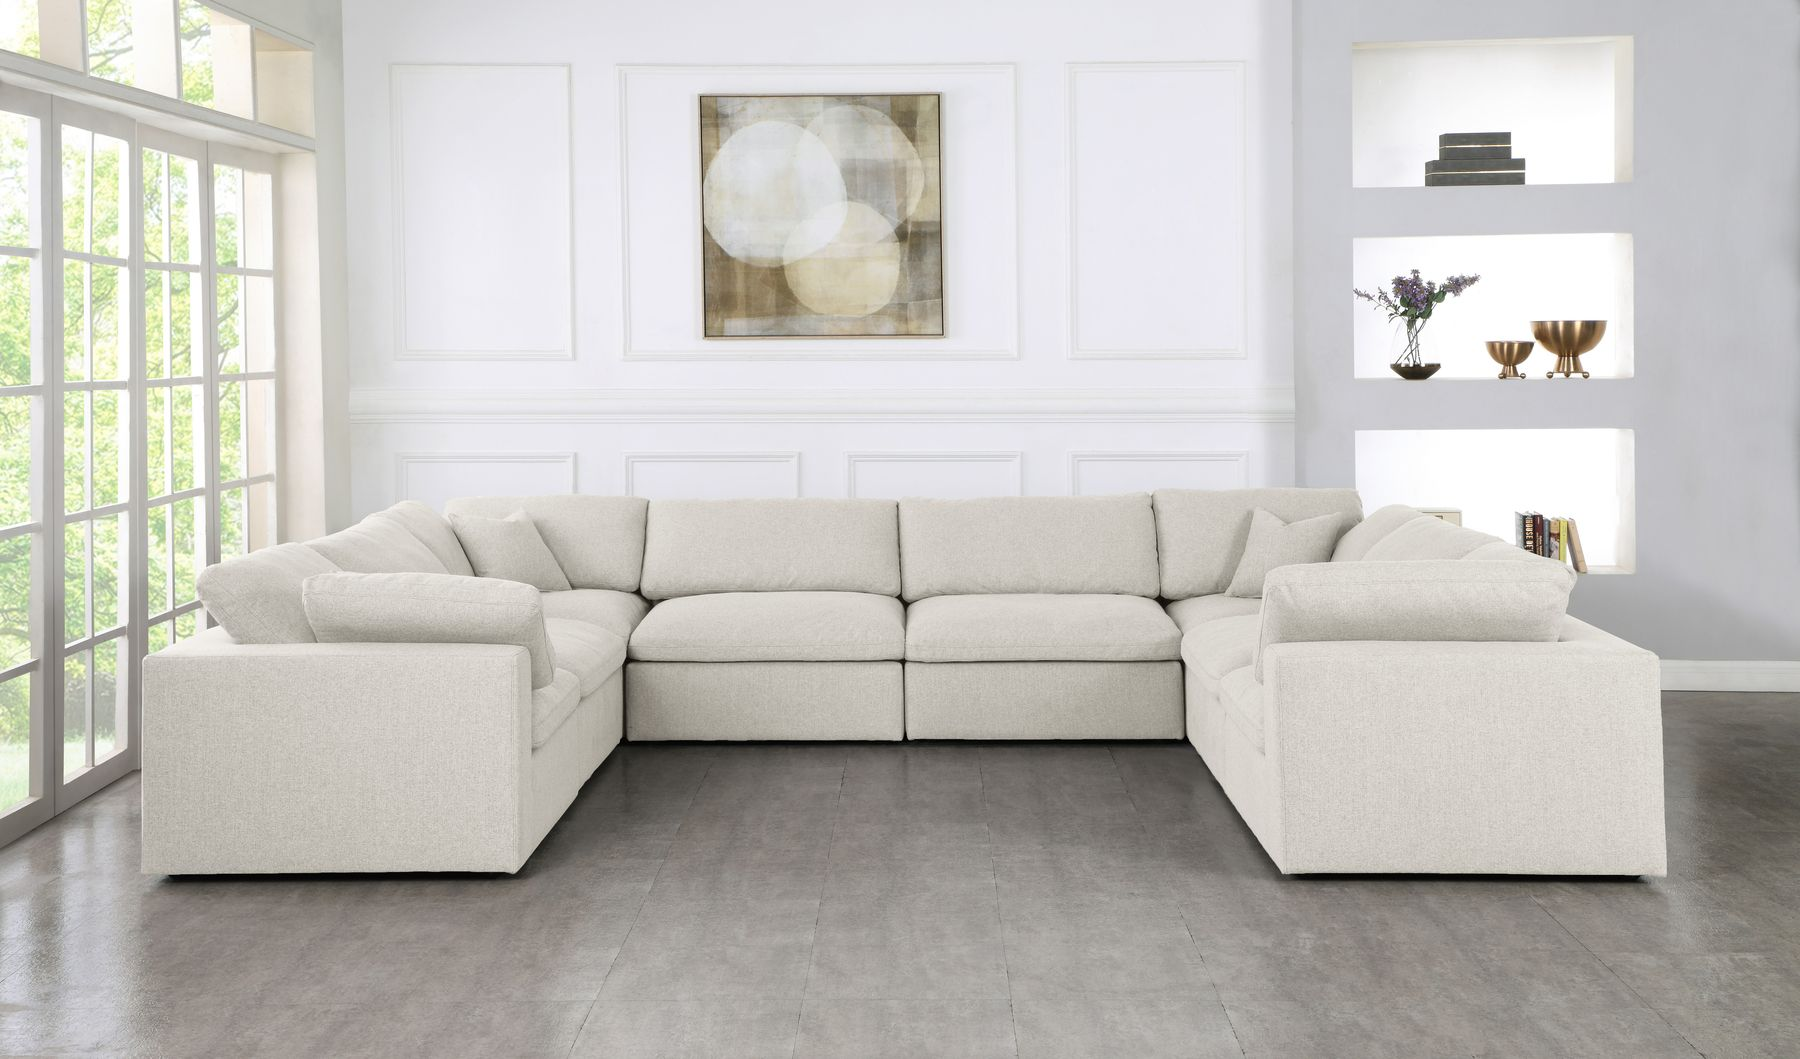 Serene 8a Cream Sectional Sofa In 2020